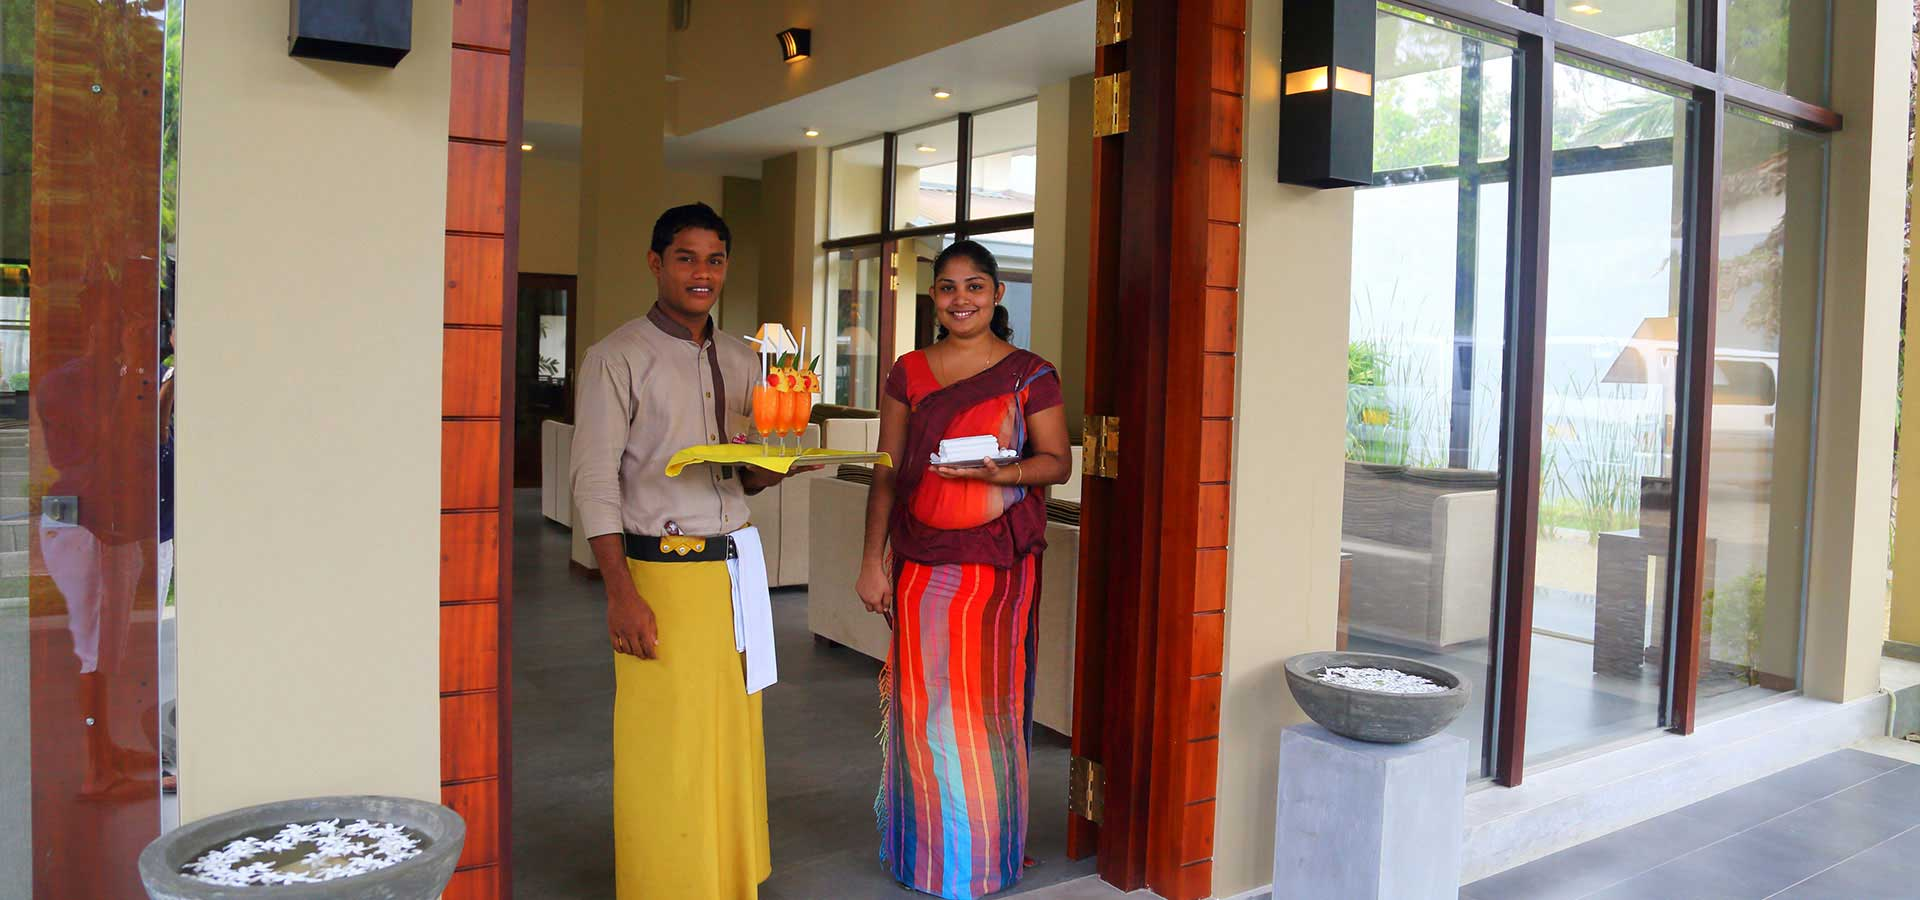 Hotels in Yala - Yala Hotels - Yala Safari Hotels - Best Hotels in Yala - Hotels near Yala National park